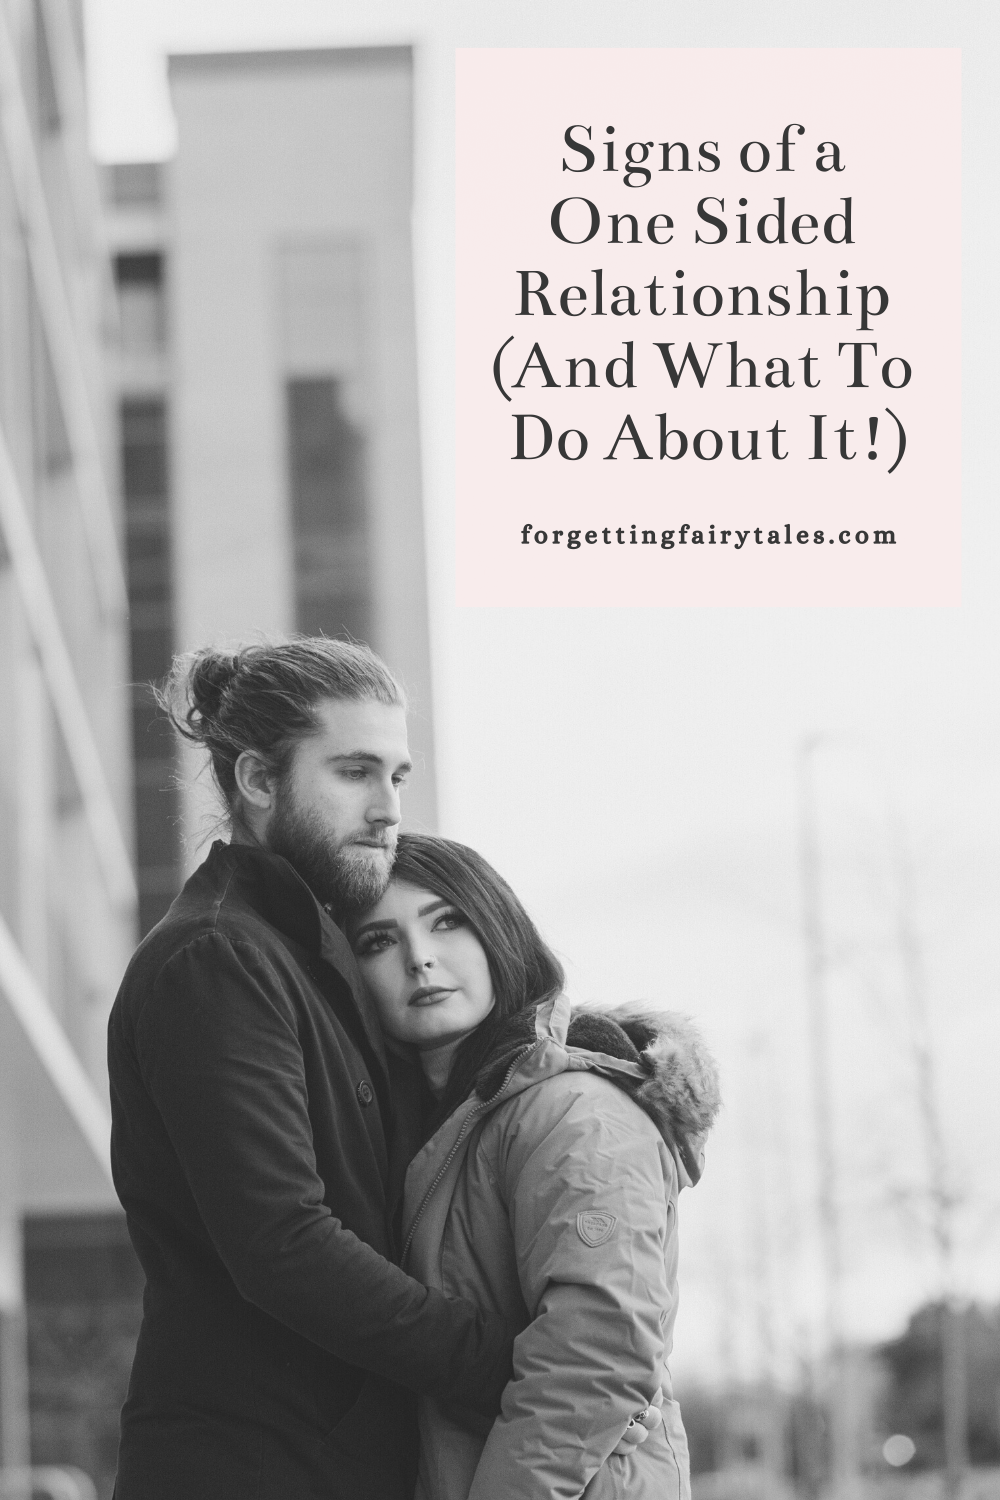 Are You In a One Sided Relationship?